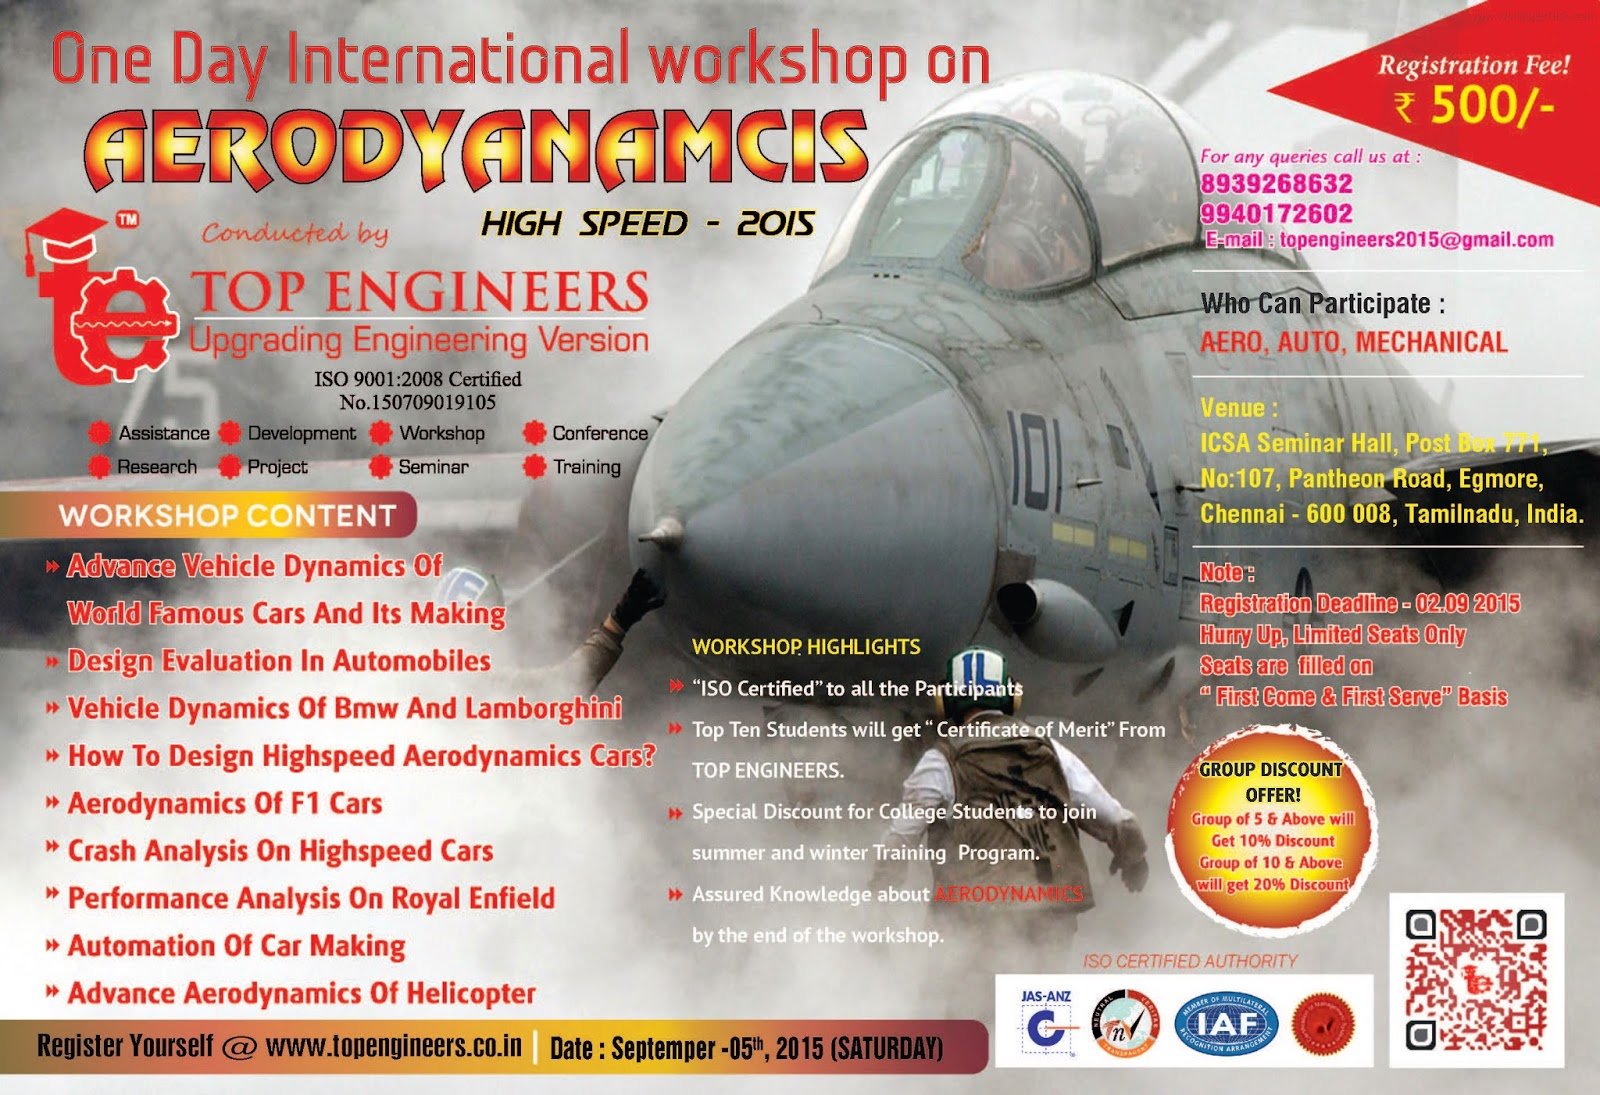 International Workshop on Aerodynamics Highspeed 2015